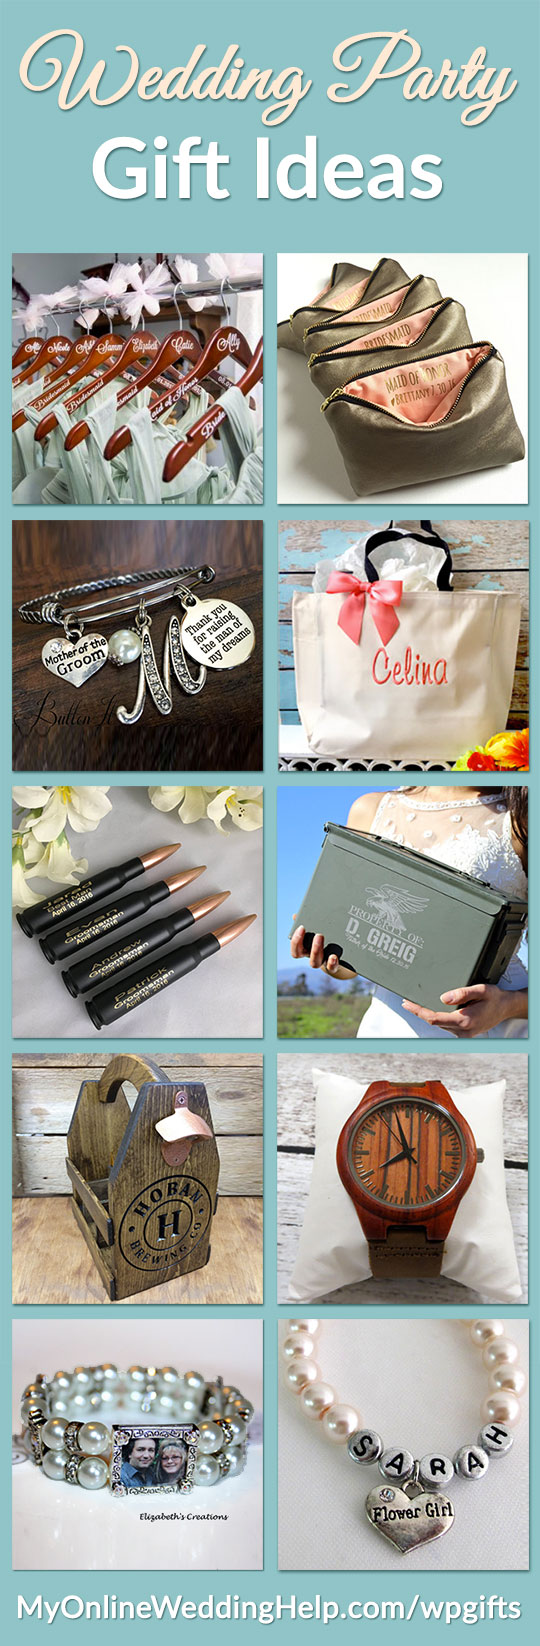 Personalized wedding party gifts are a way to add special meaning without added cost. Ideas: custom bridesmaid hangers, message or name makeup bags, MOB or MOG charm bracelet, custom tote bag, personalized groomsmen bullet bottle openers, custom ammo cans for the dads and groomsmen, wooden beer carrier with opener, engraved wooden watch, Swarvoski pearl and crystal photo bracelet, and flower girl's name bracelet. There are links on the page to where you can get these. Scroll to number 113.